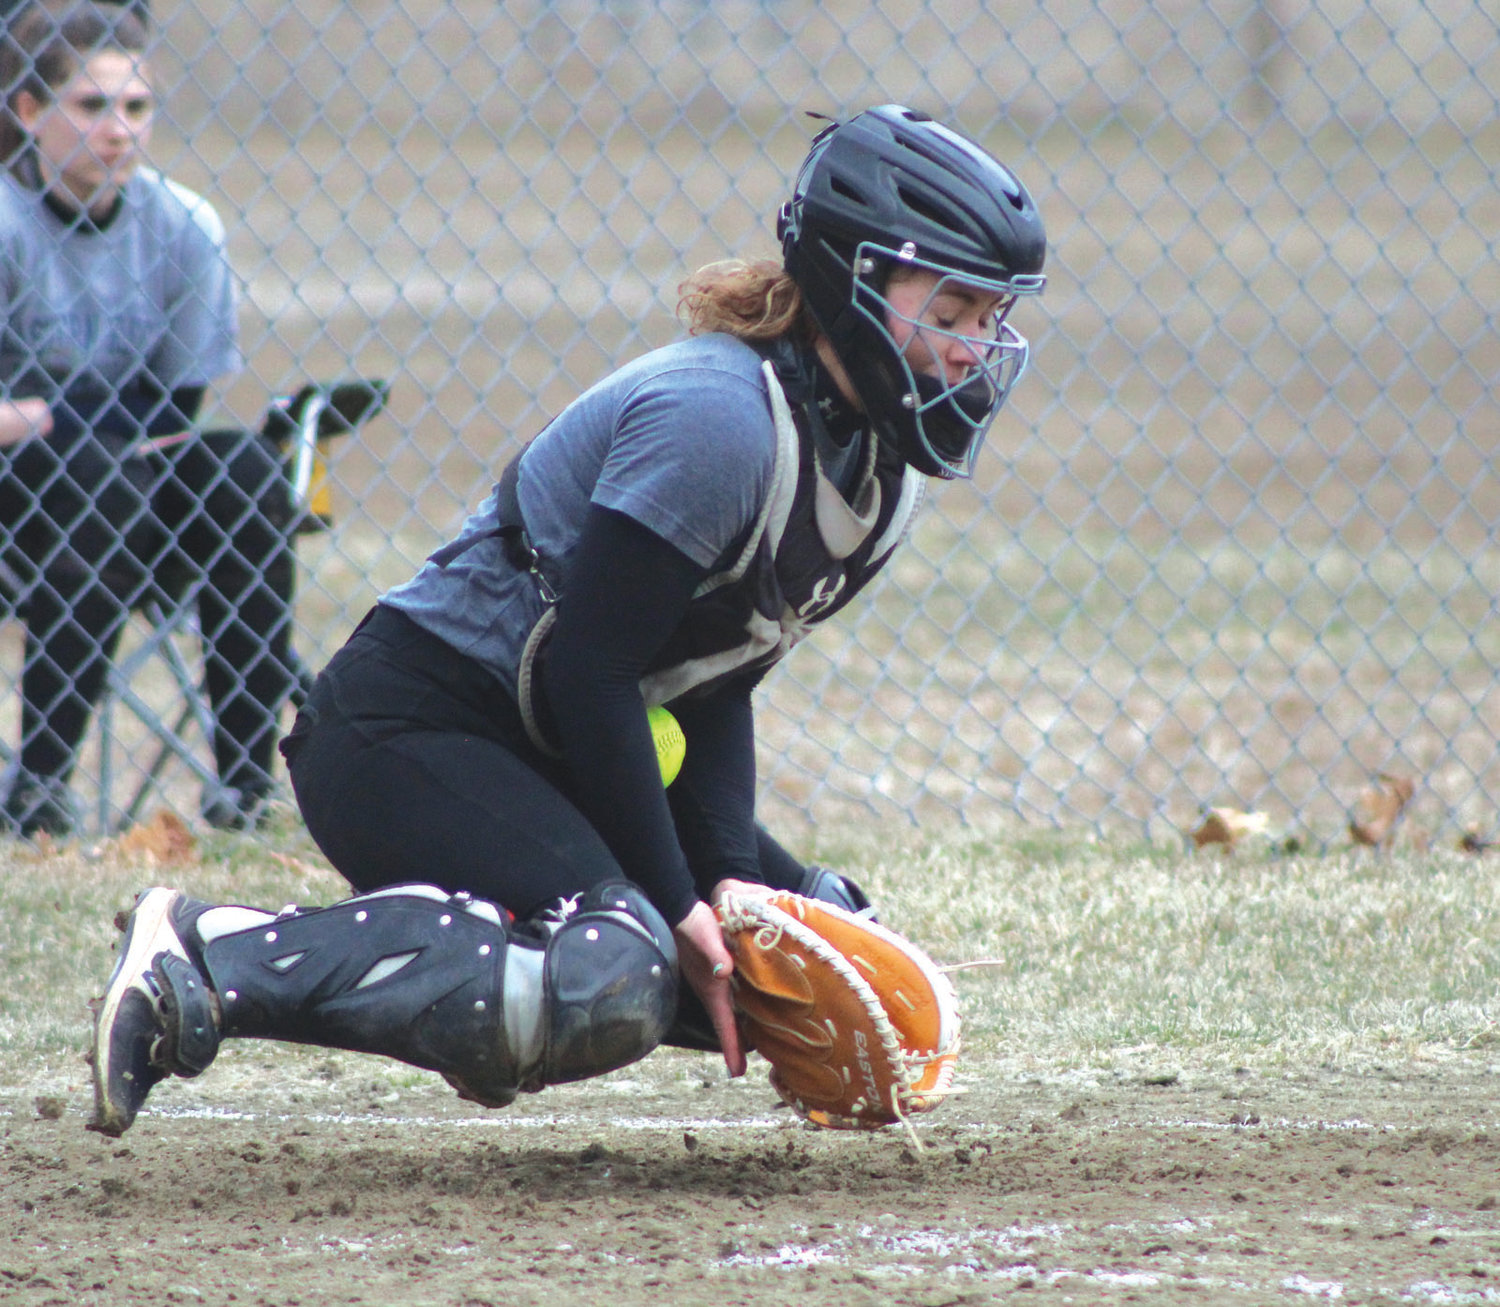 BEHIND THE PLATE: West's Emily Durigan makes a stop against Pilgrim.